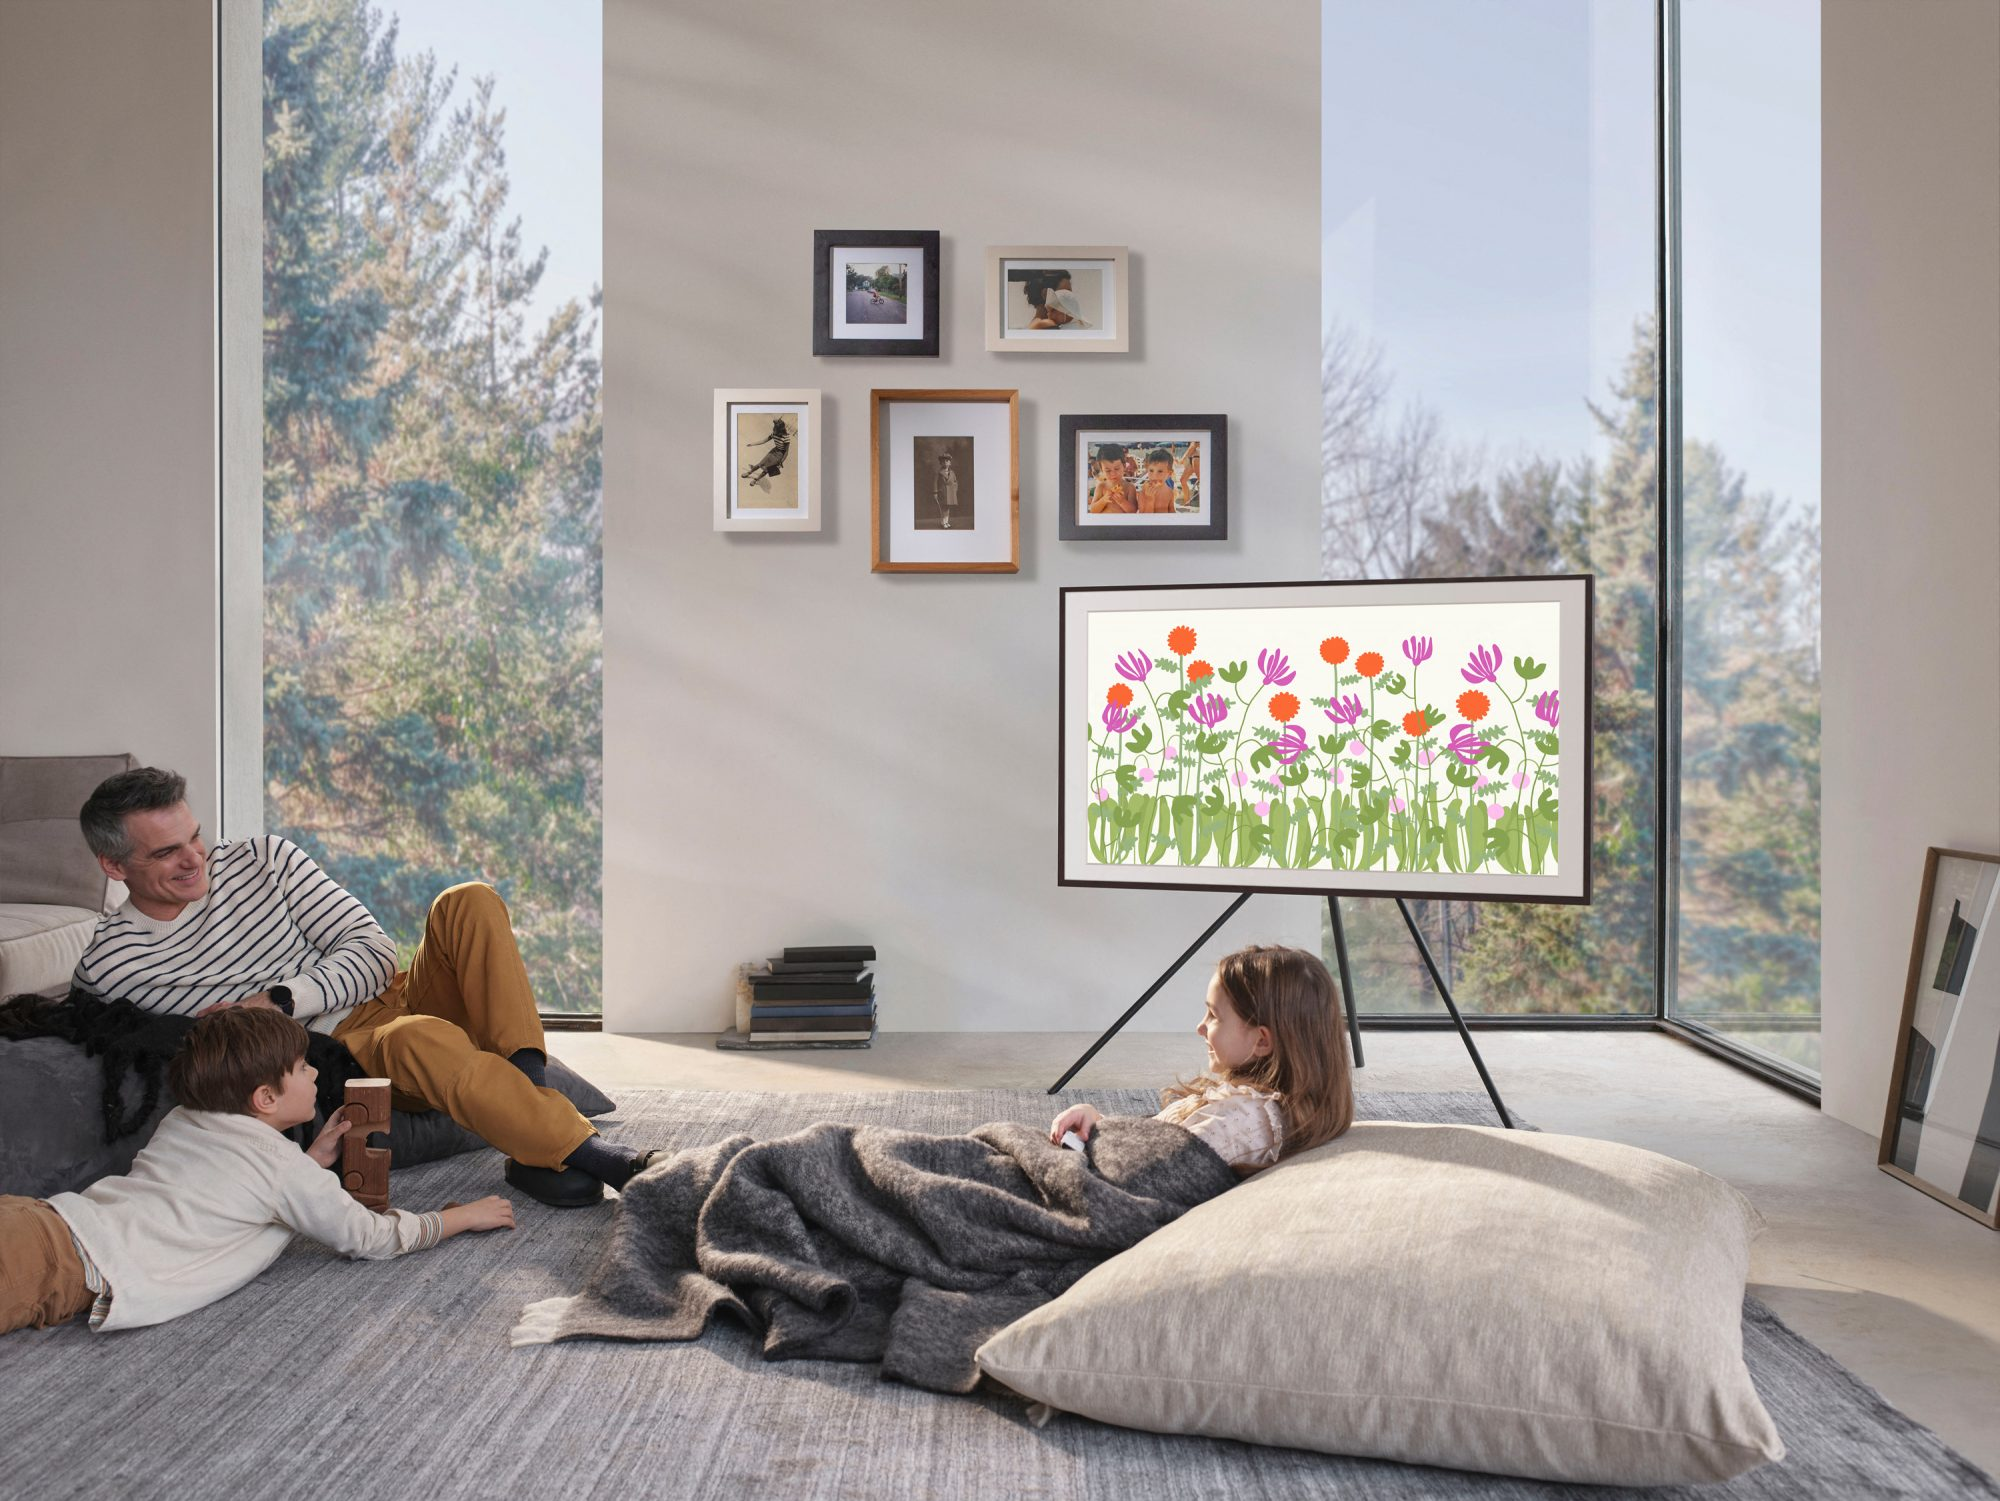 Samsung's New Partnership with Etsy Brings Colorful and Inspiring Artwork to The Frame TV